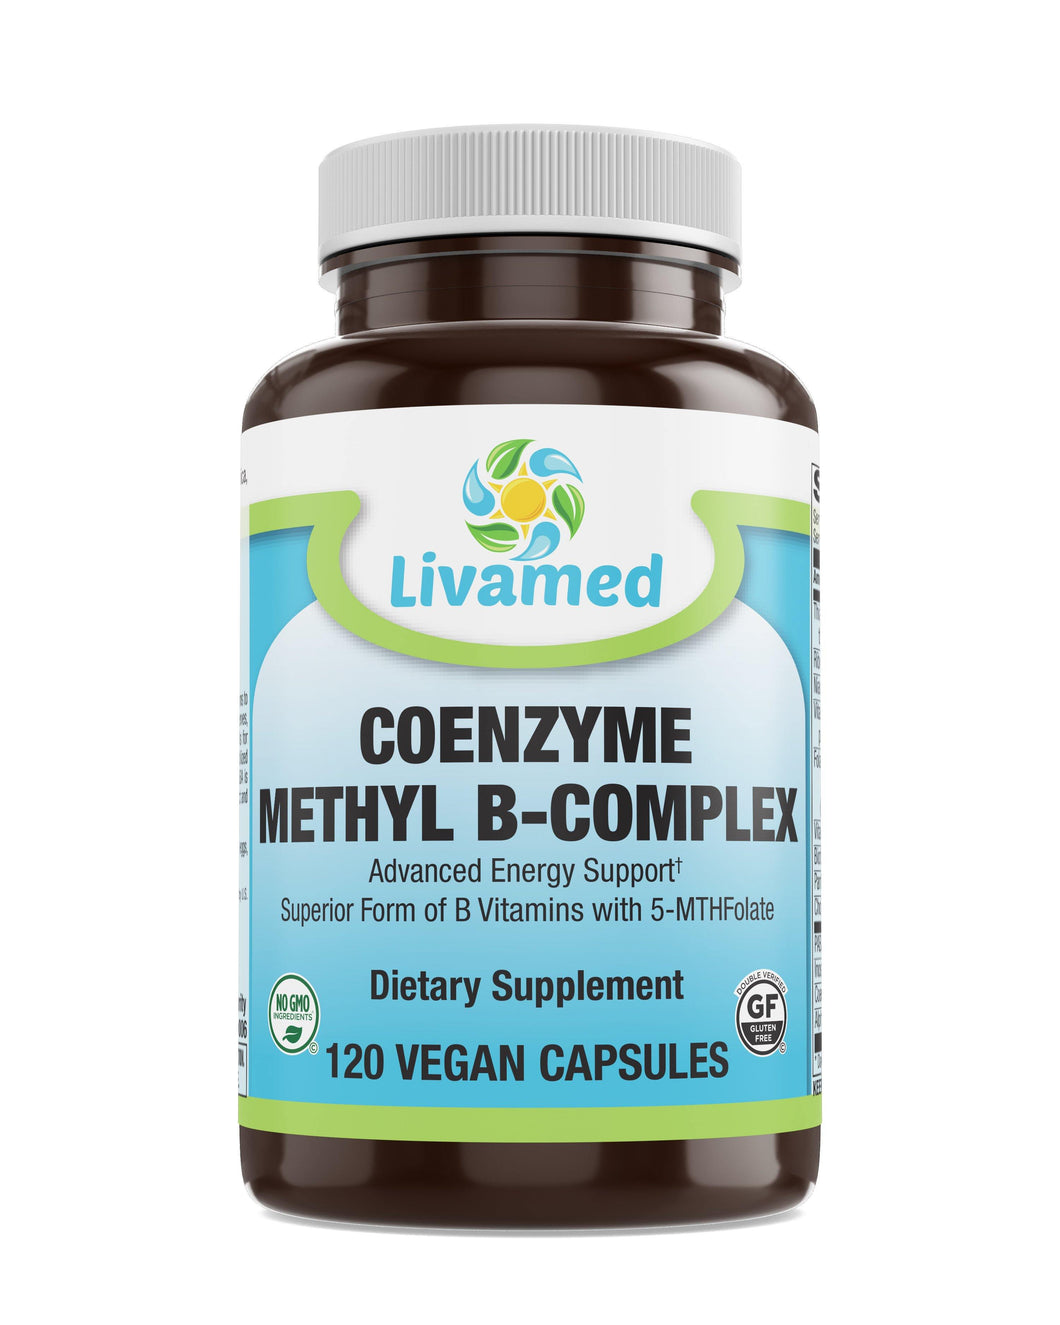 Livamed - Coenzyme Methyl B-Complex 120 Count - Livamed Vitamins